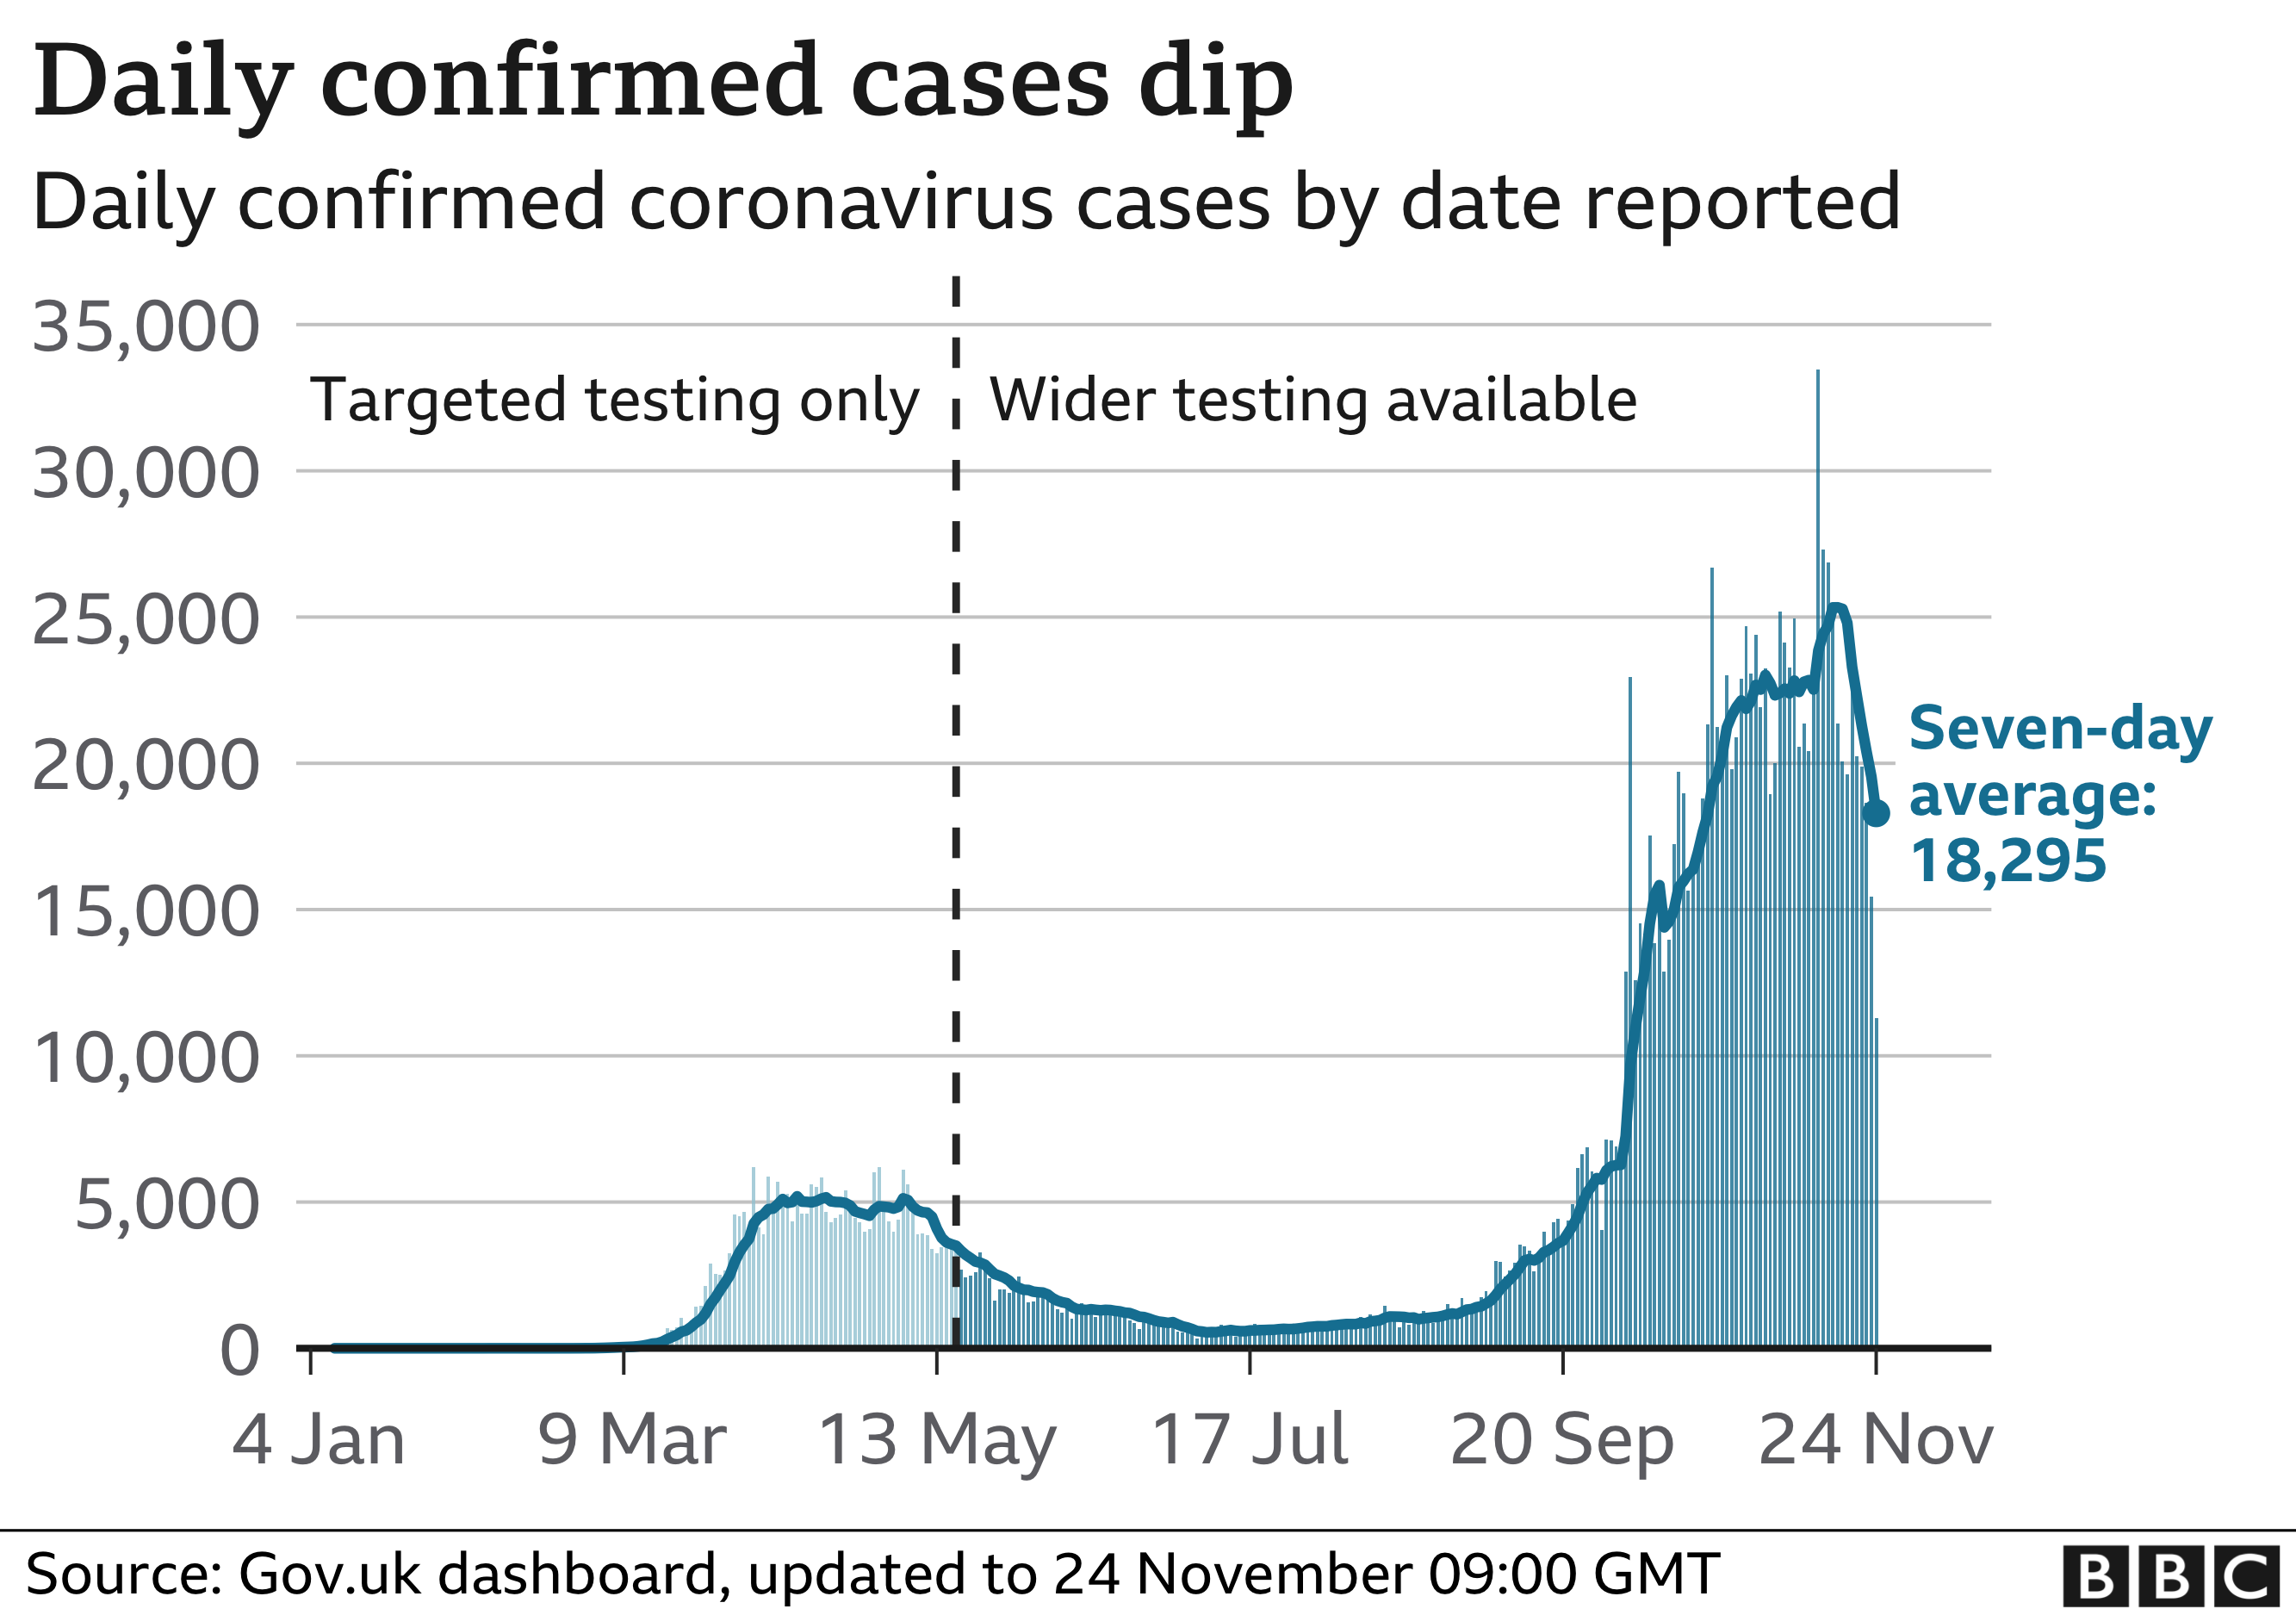 Chart showing confirmed cases dipping, updated 24 Nov